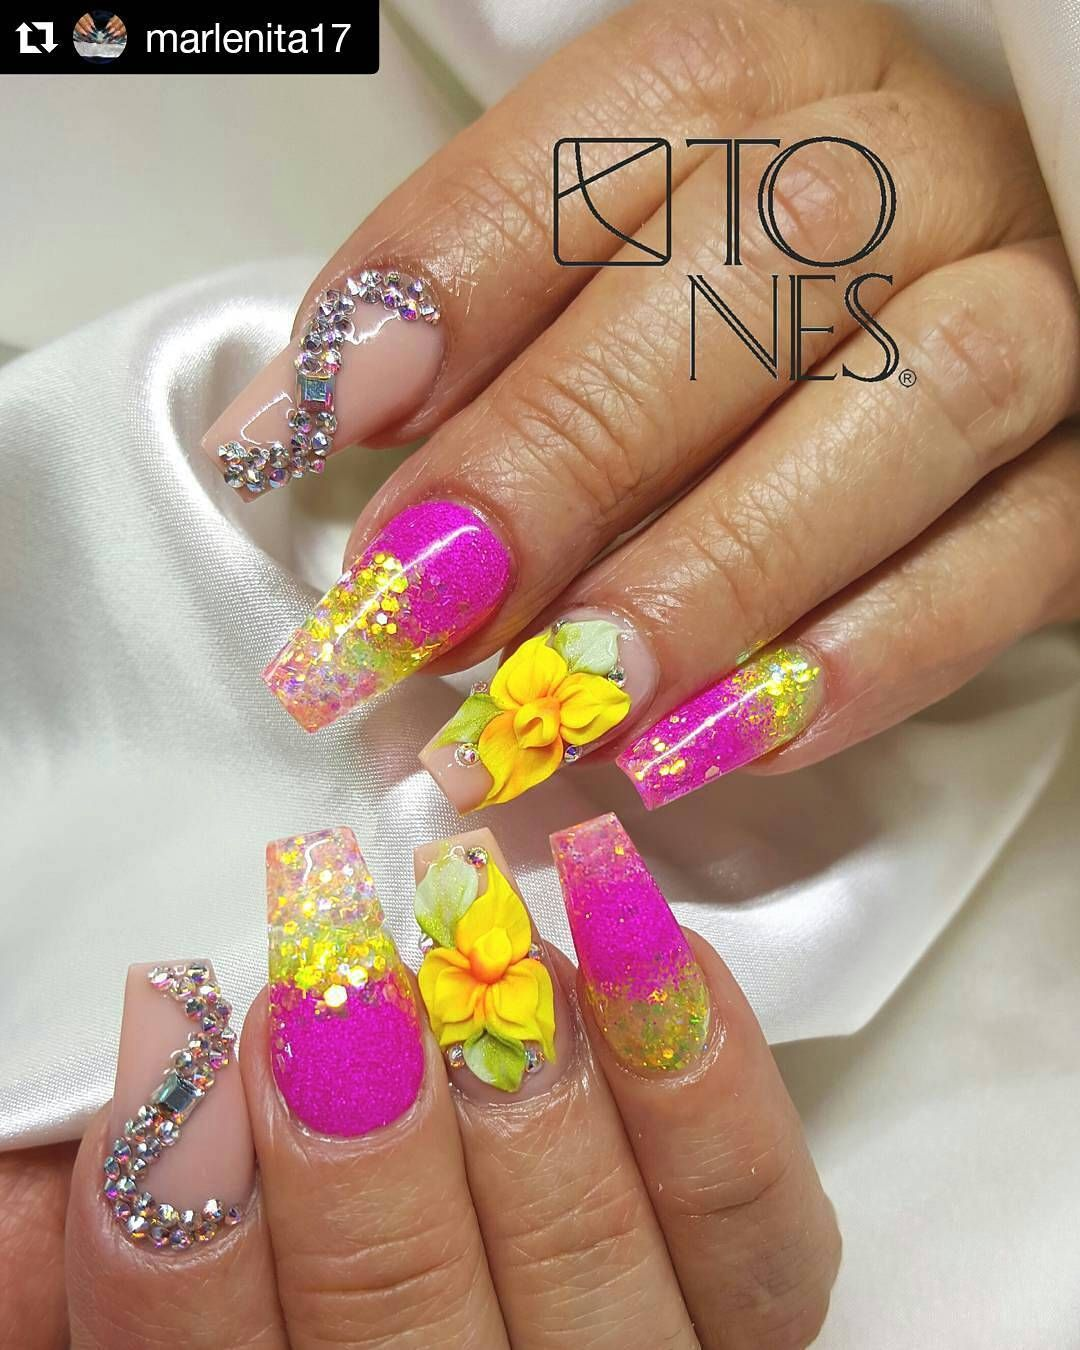 Pin by Addy York on Nails | Pinterest | Exotic nails and Gorgeous nails